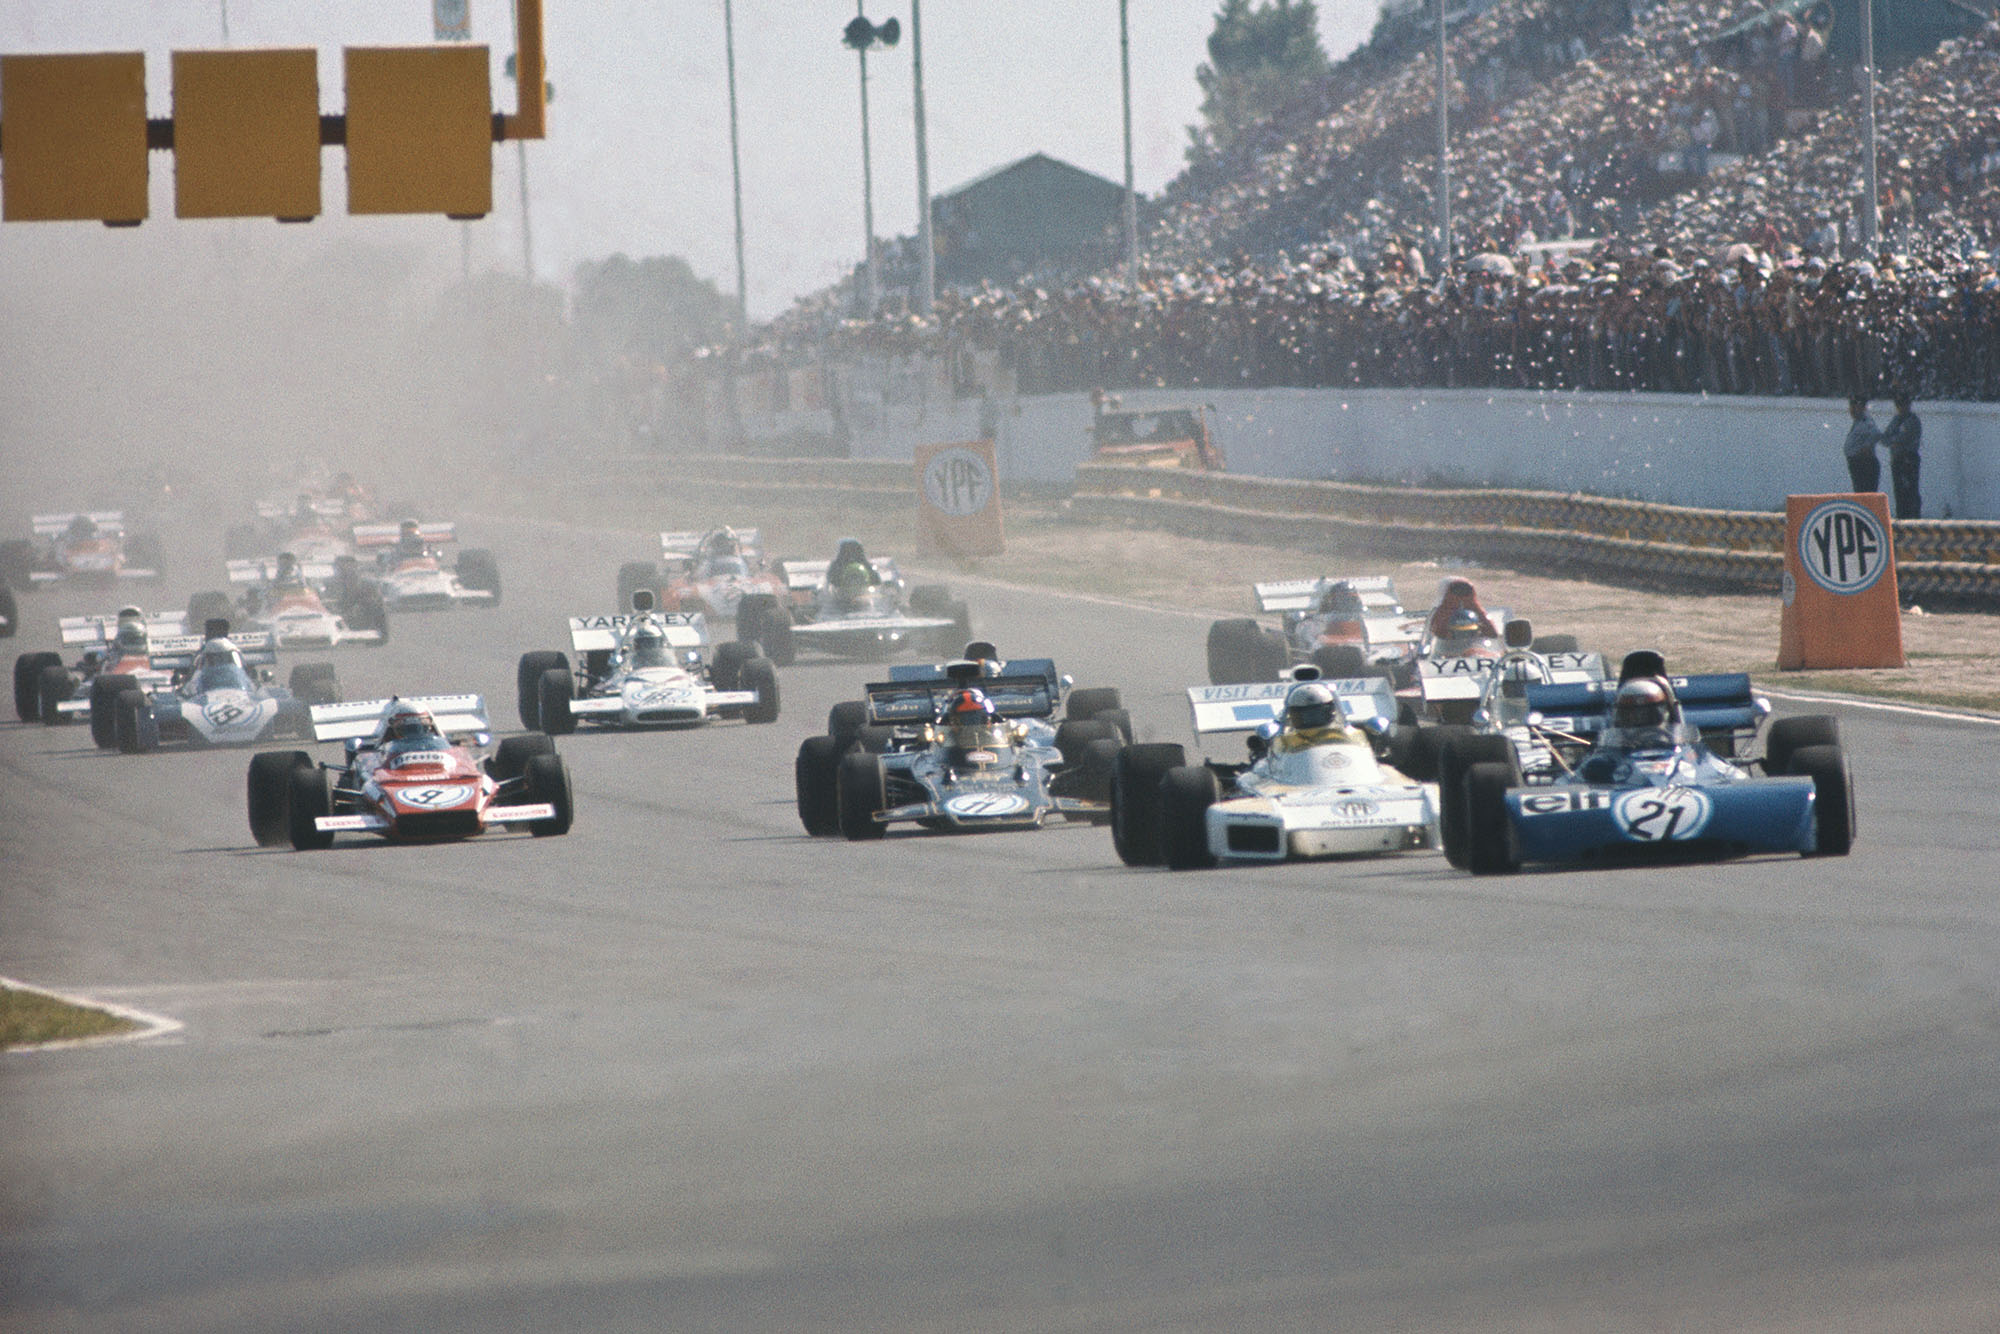 Jackie Stewart (Tyrrell) jumps into the lead at the 1972 Argentine Grand Prix.